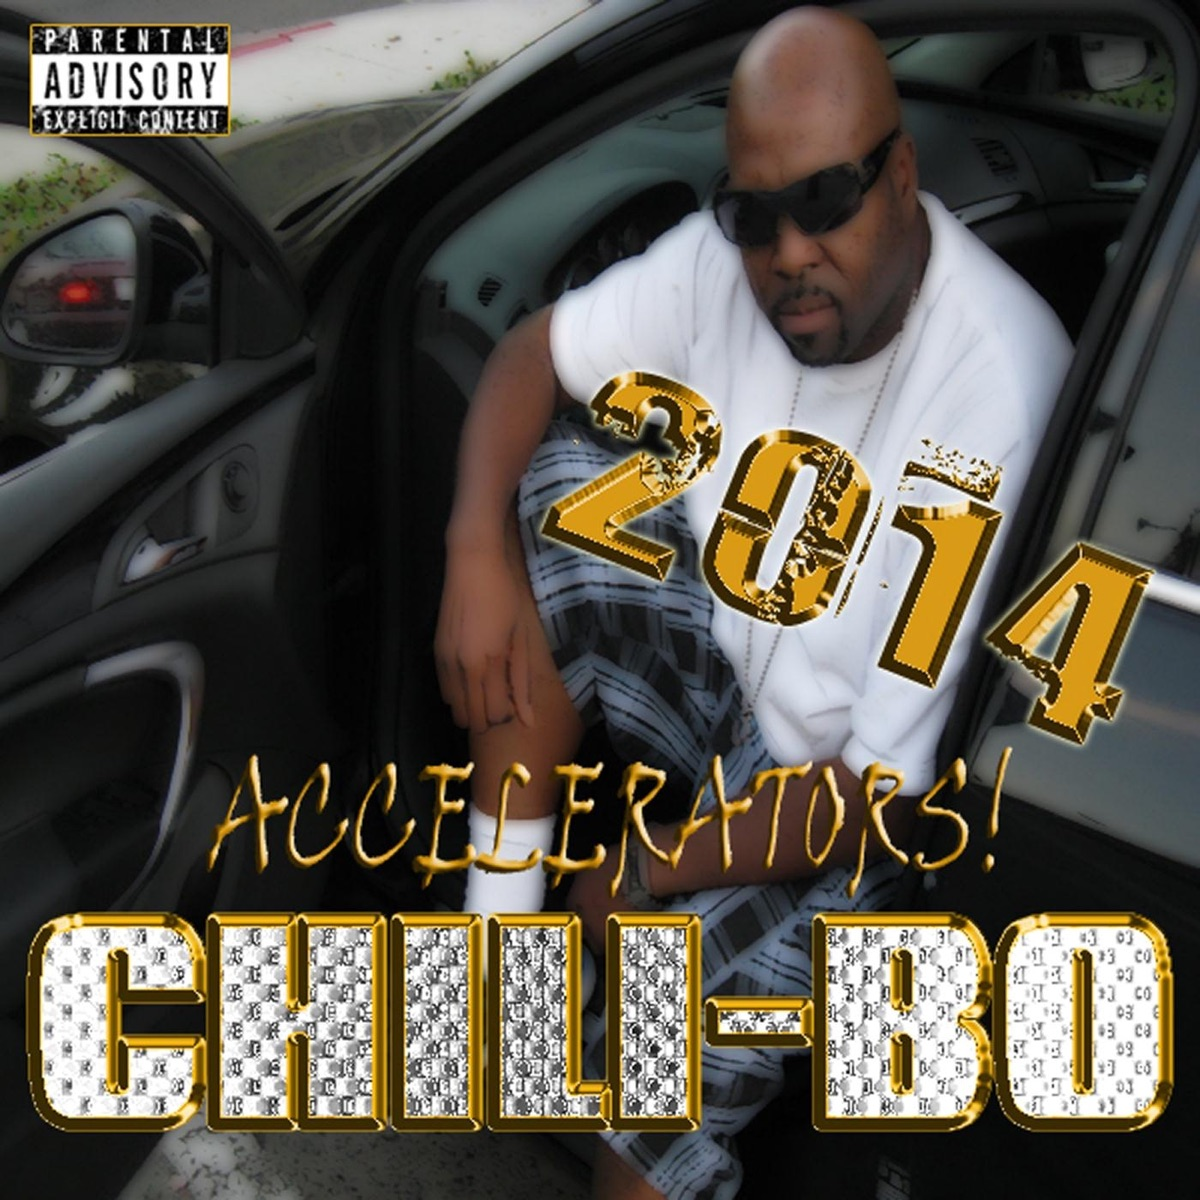 Accelerators 2014 - Single Chili-Bo CD cover